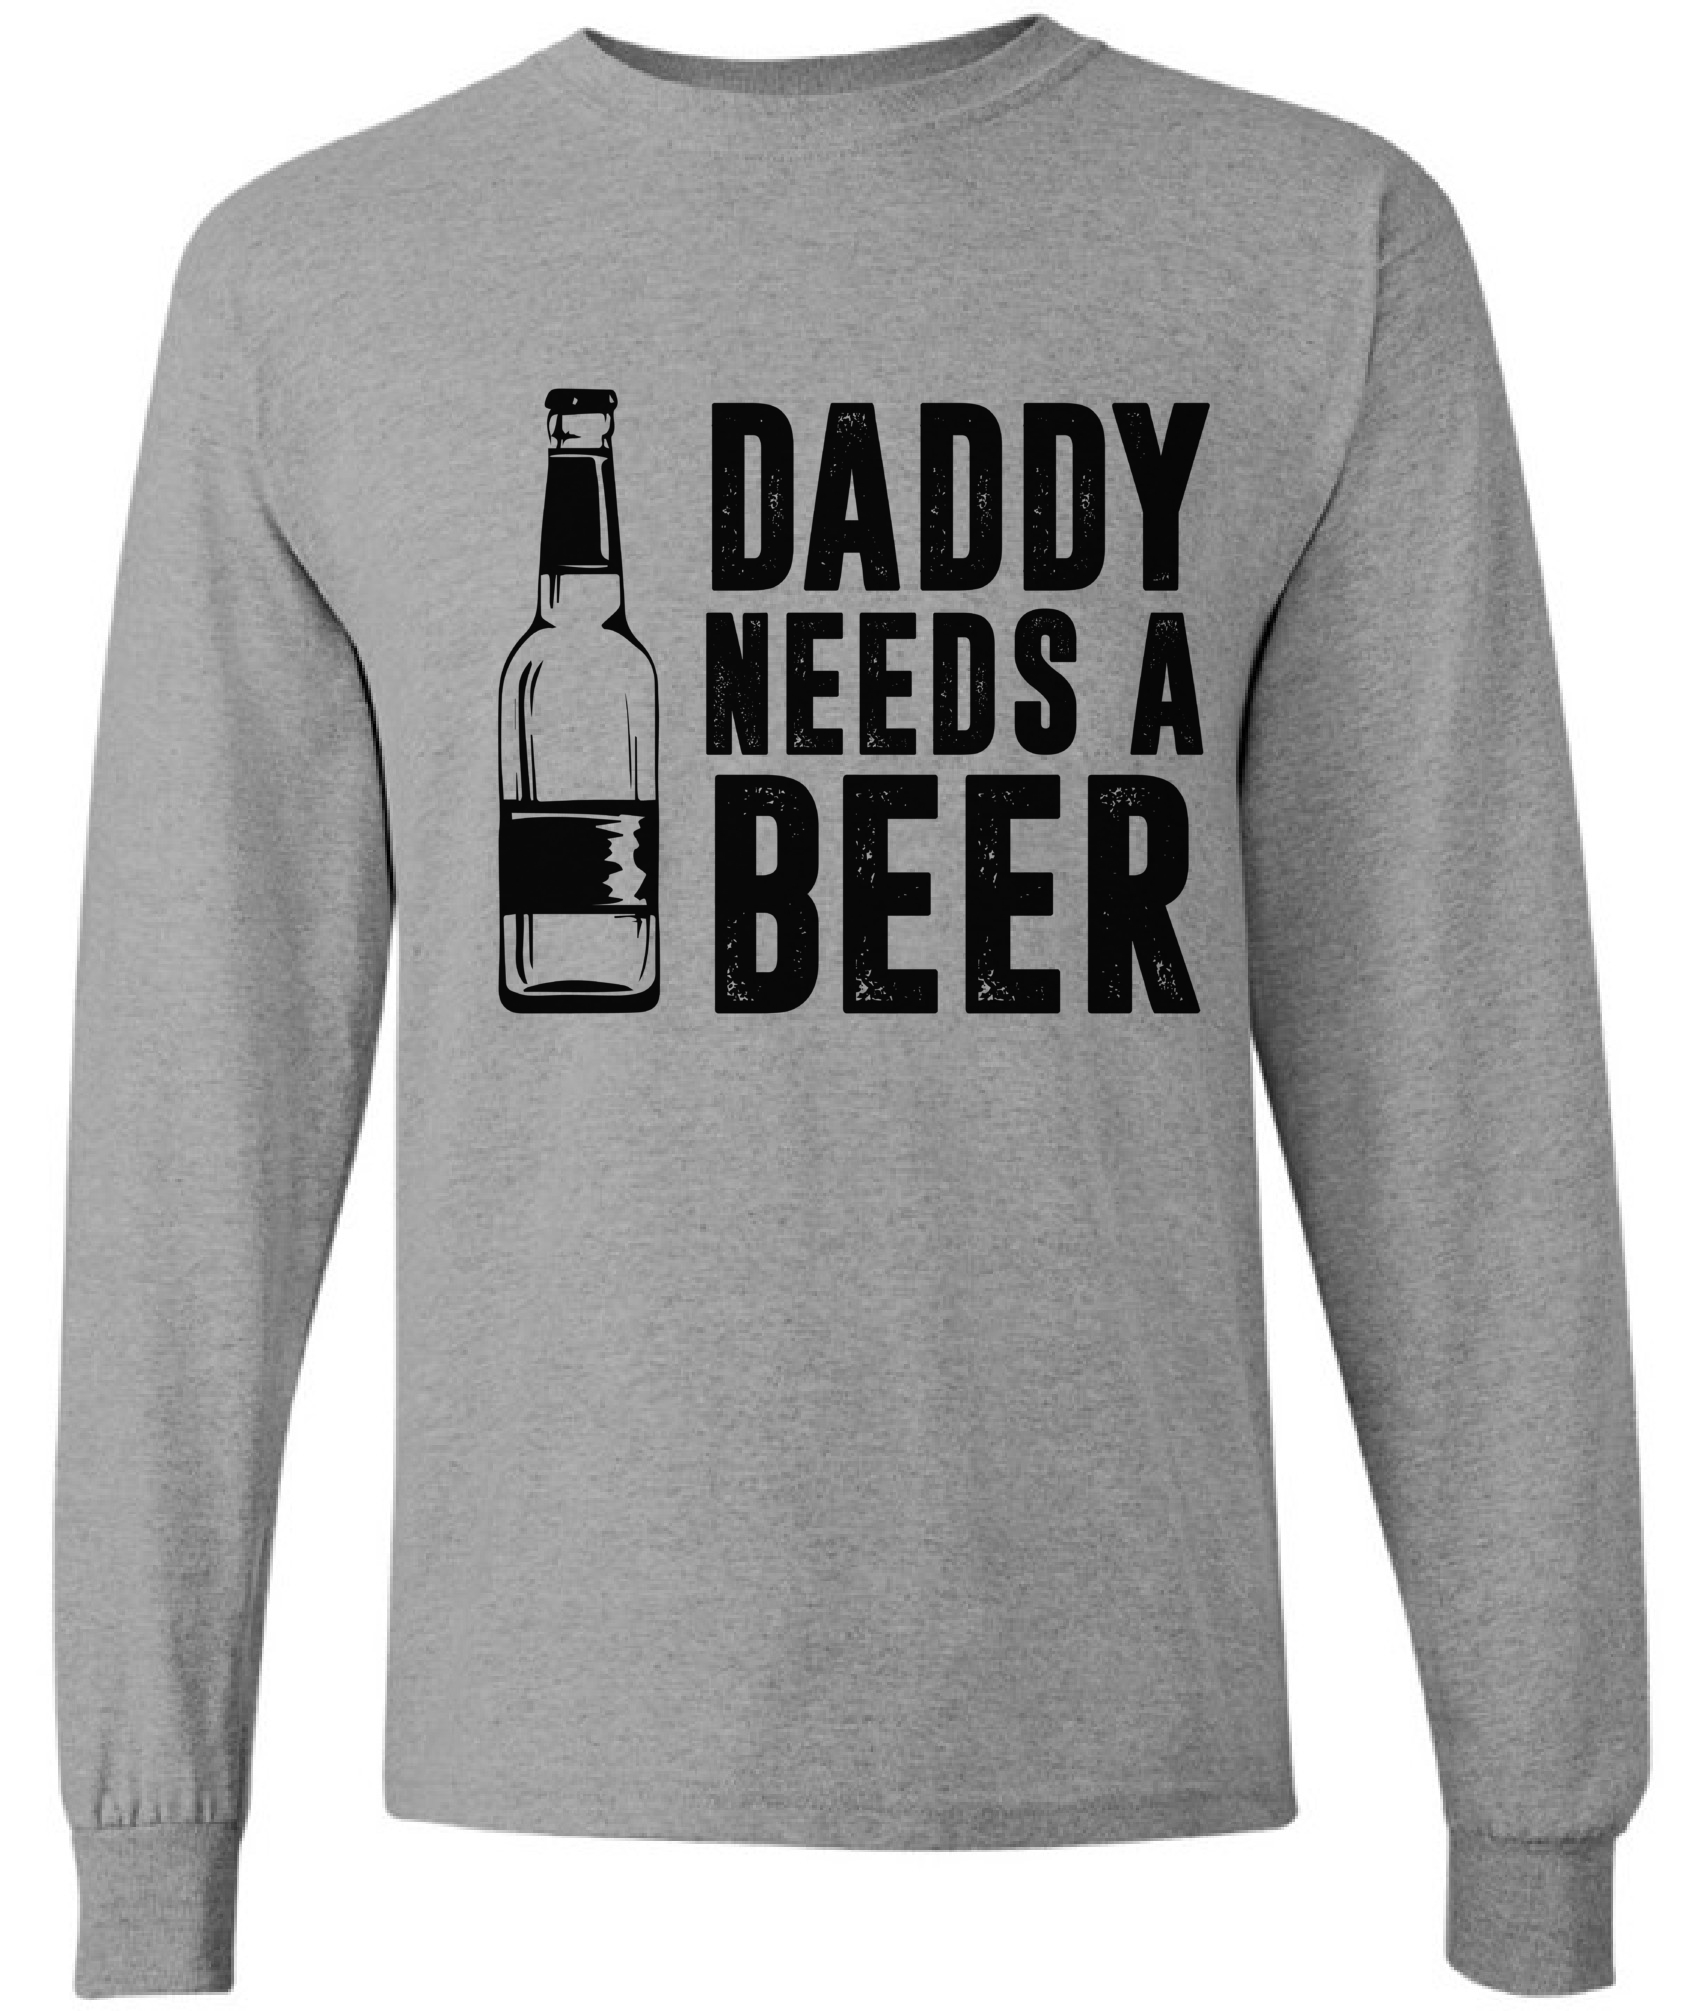 Daddy Needs A Beer Long Sleeve Shirt Cool